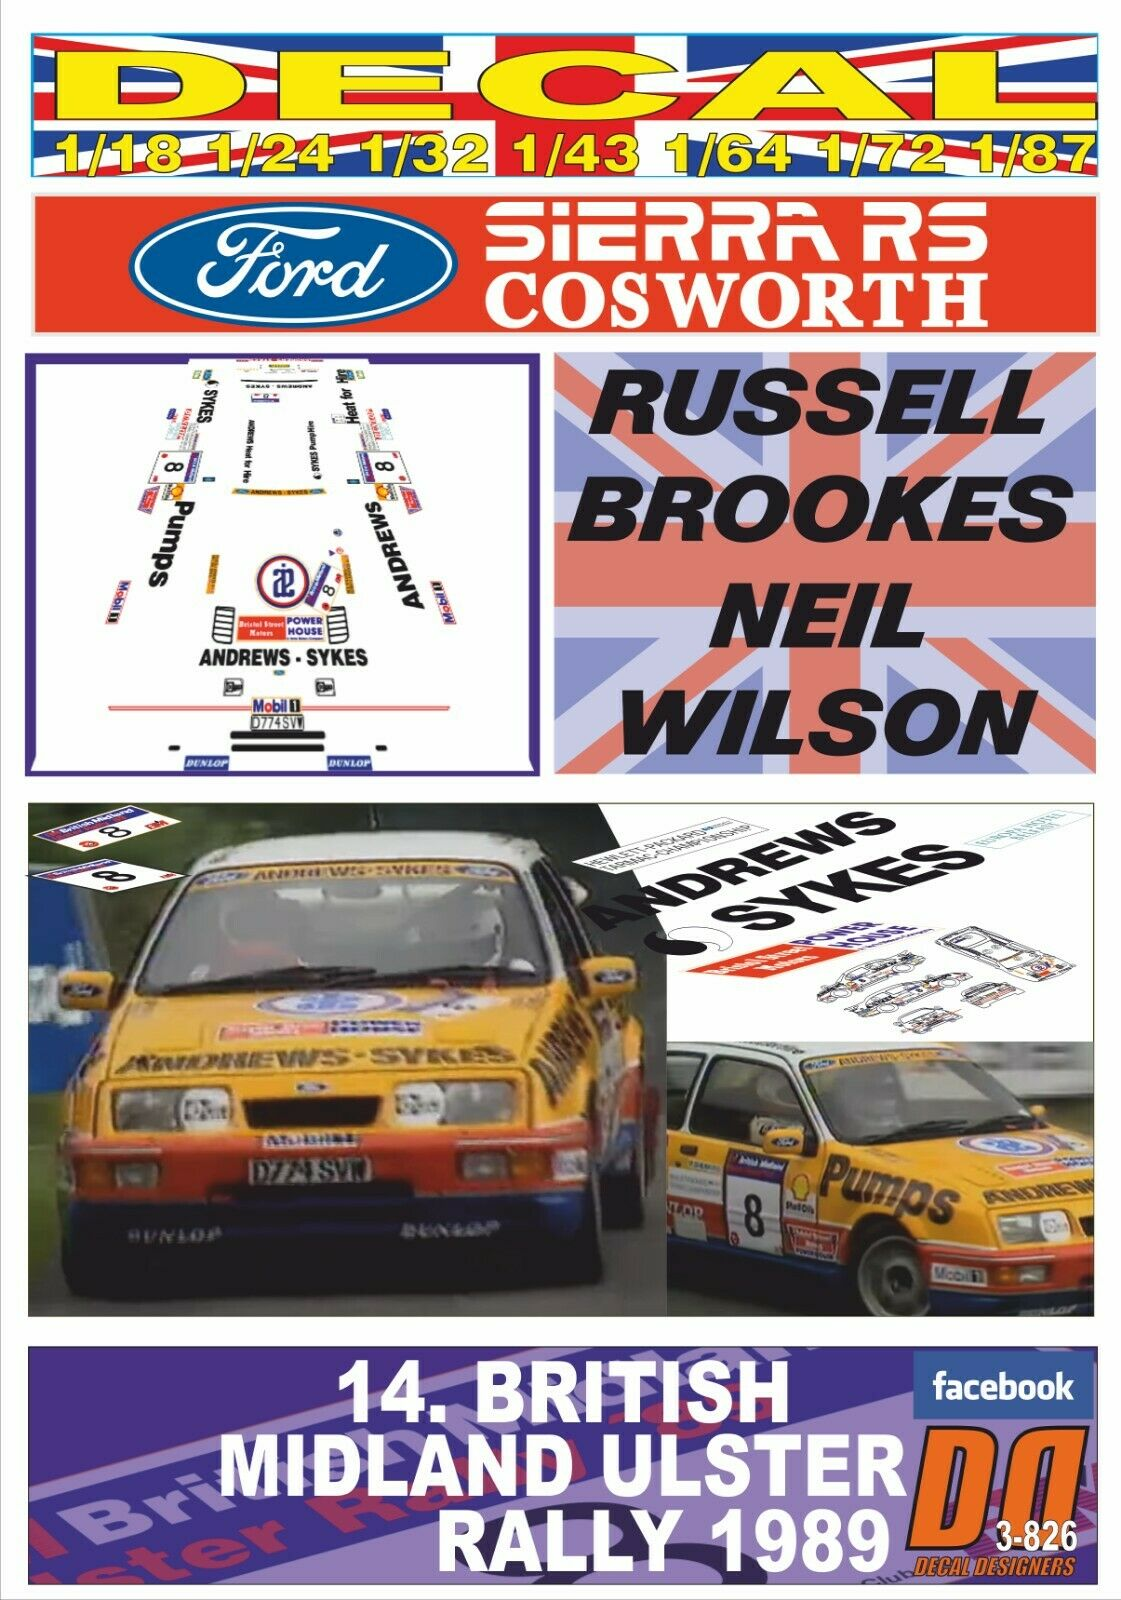 DECAL FORD SIERRA RS COSWORTH R.BROOKES ULSTER R. 1989 2nd (07)